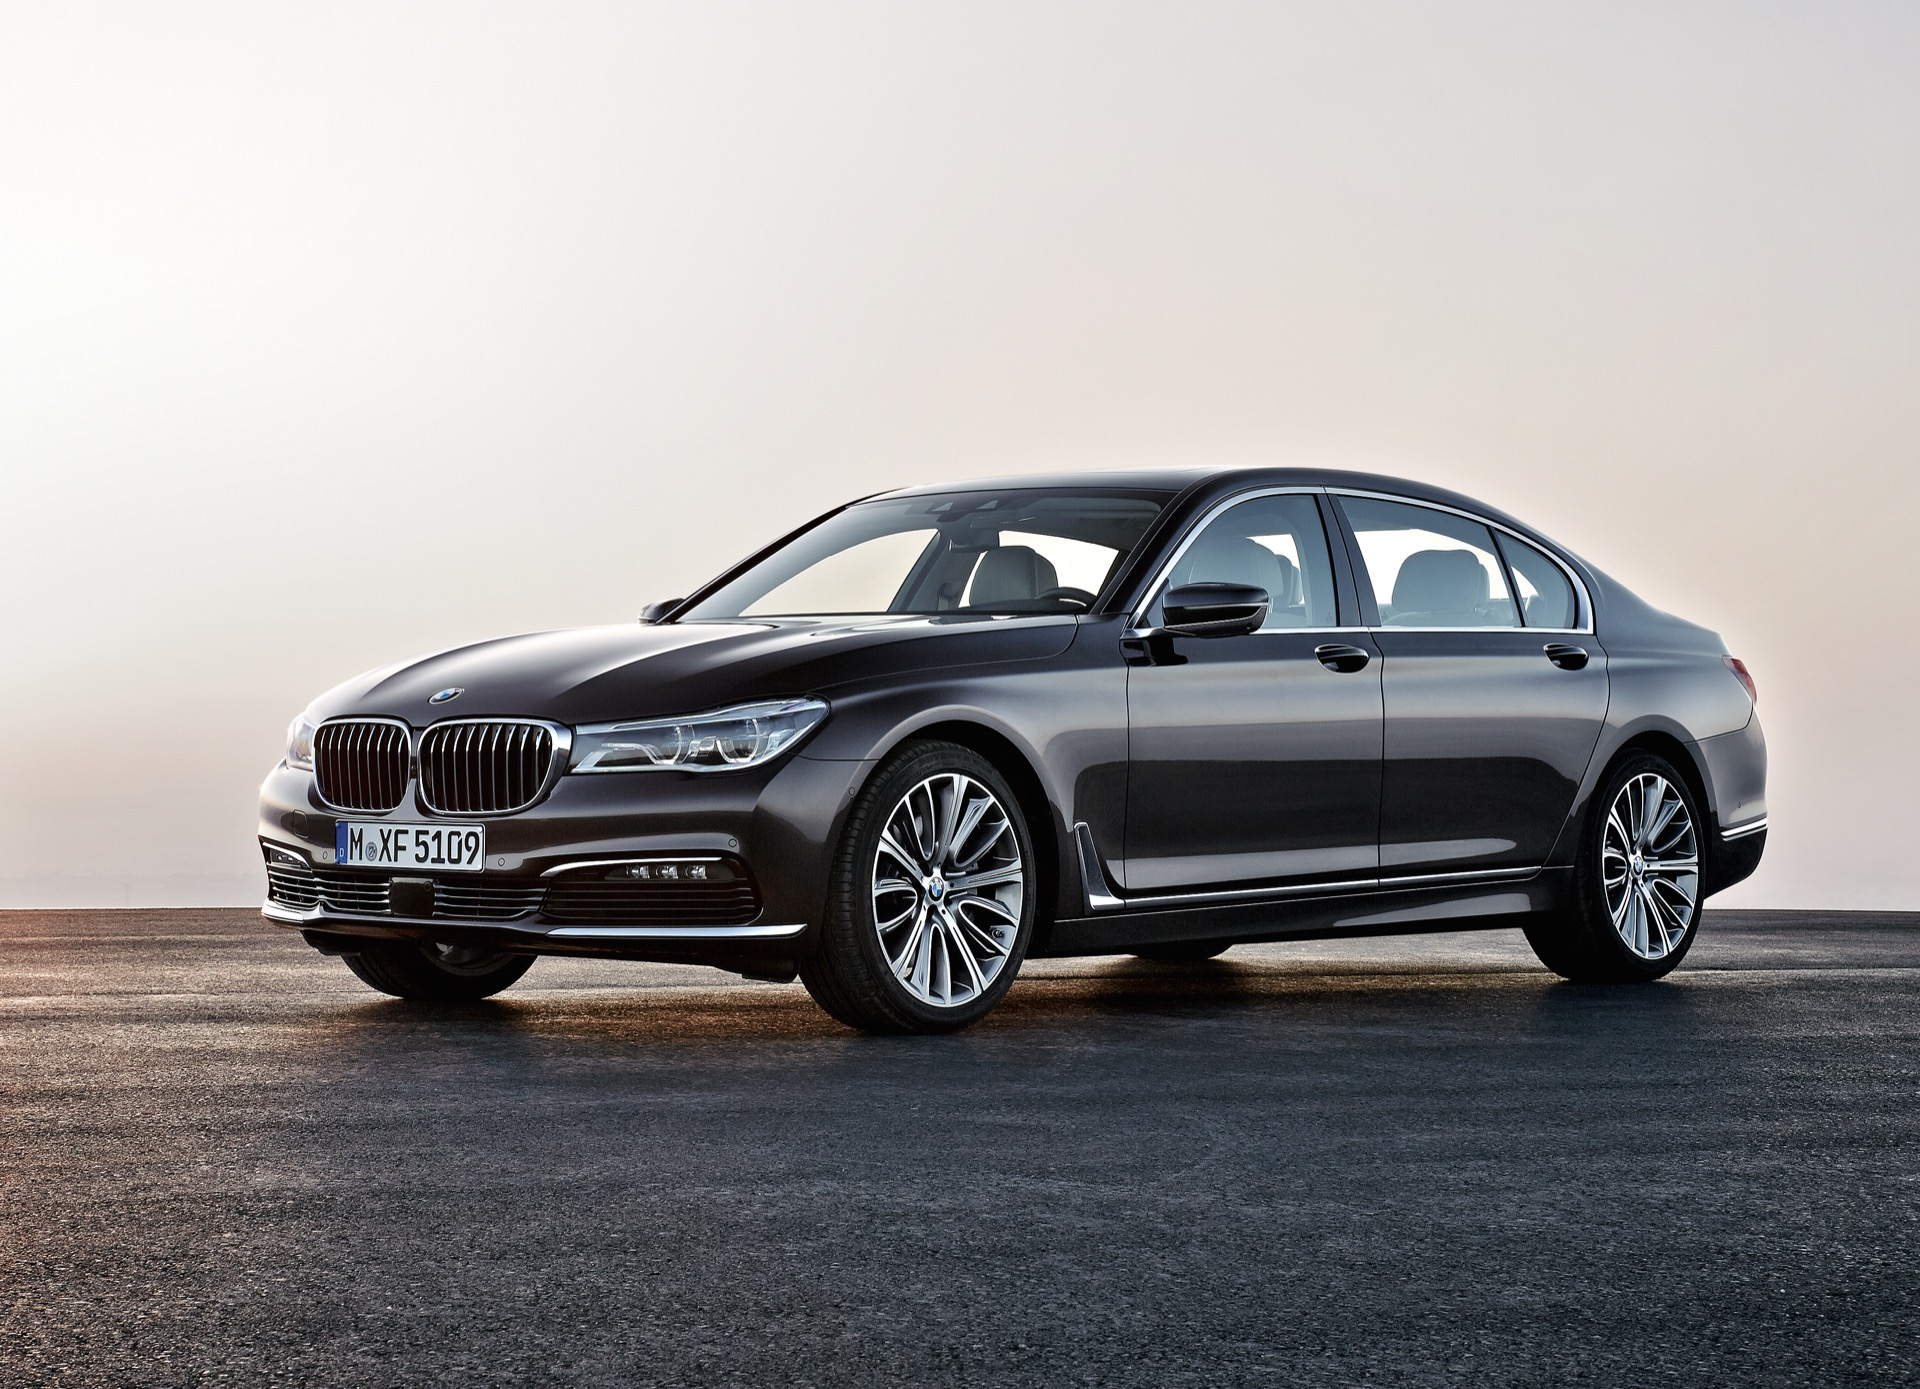 Diesel BMW 7 Series Wont Be Sold In US Company Confirms